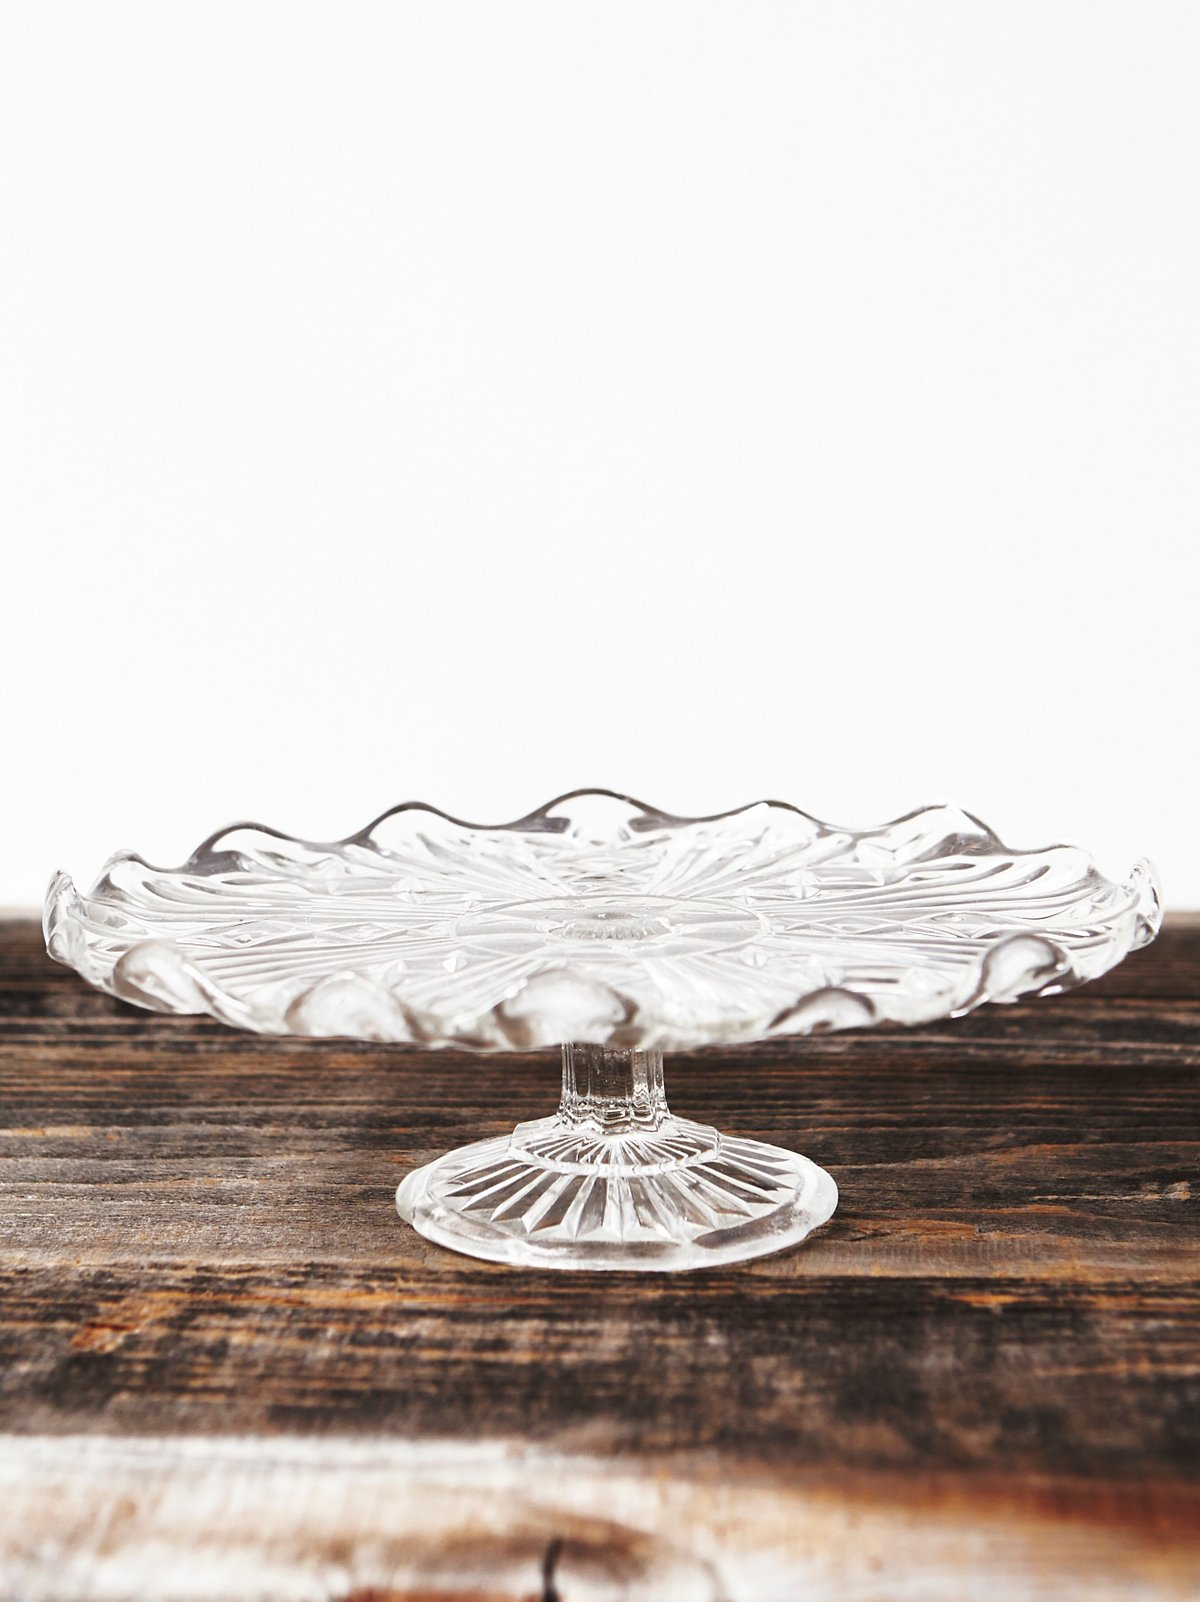 Vintage Glass Cake Plate